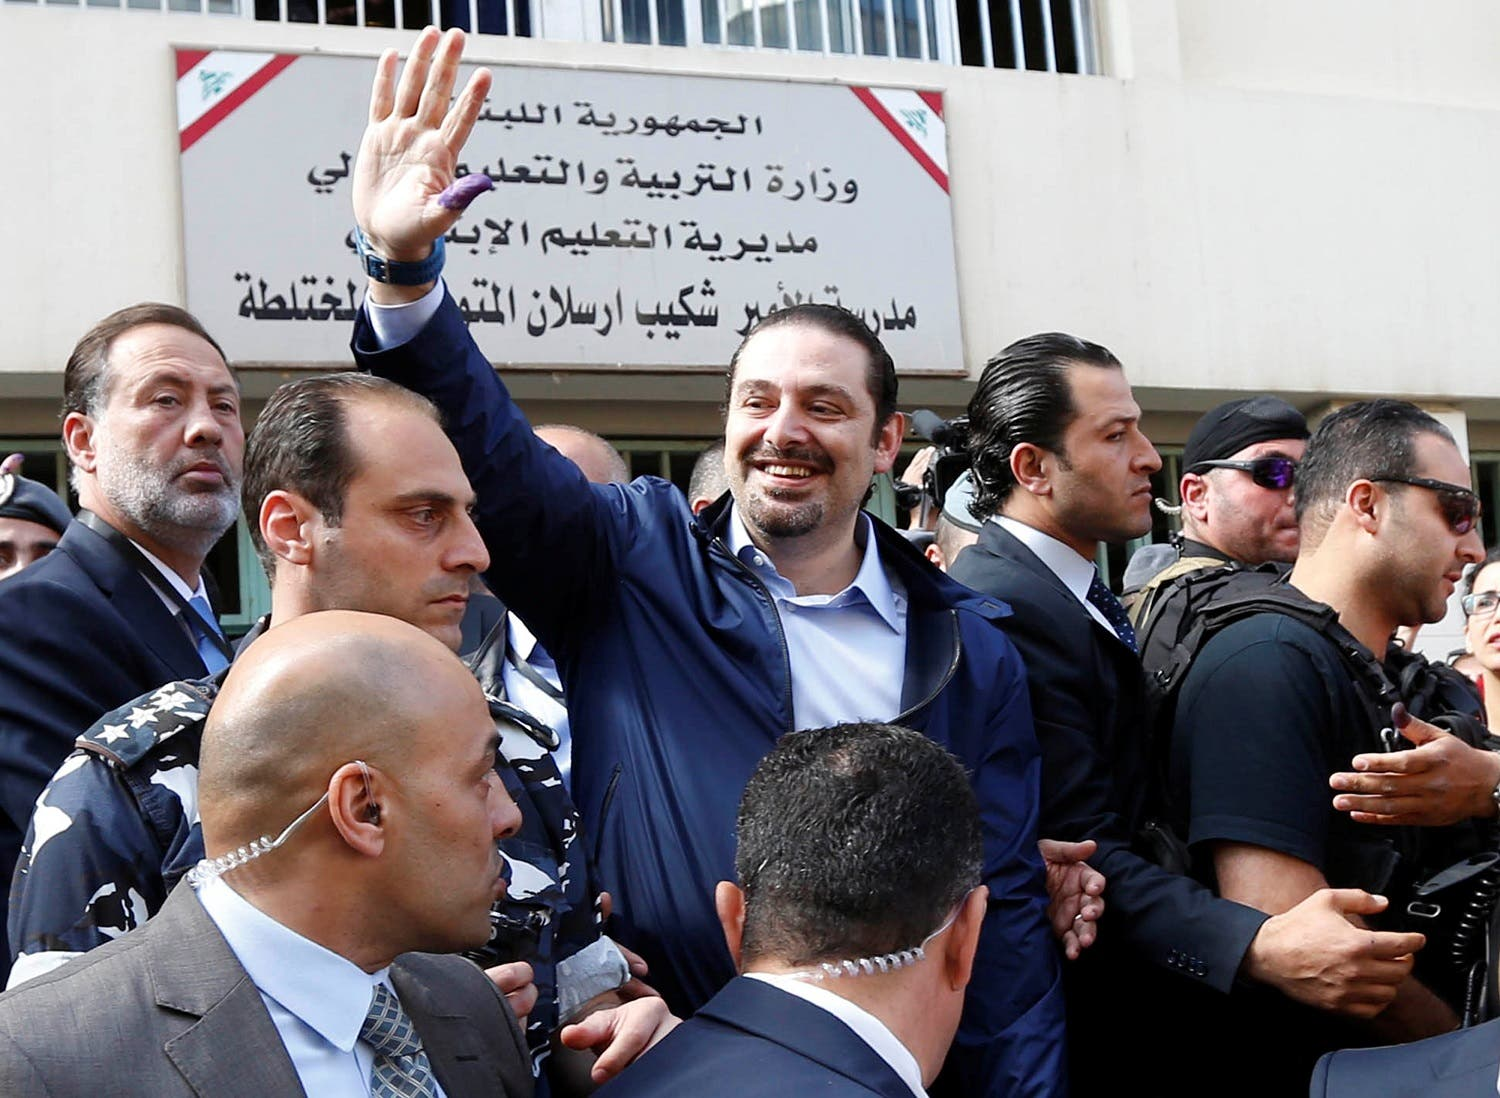 Lebanon's former Prime Minister Saad al-Hariri greets his supporters after casting his ballot at a polling station during Beirut's municipal elections, Lebanon, May 8, 2016. REUTERS